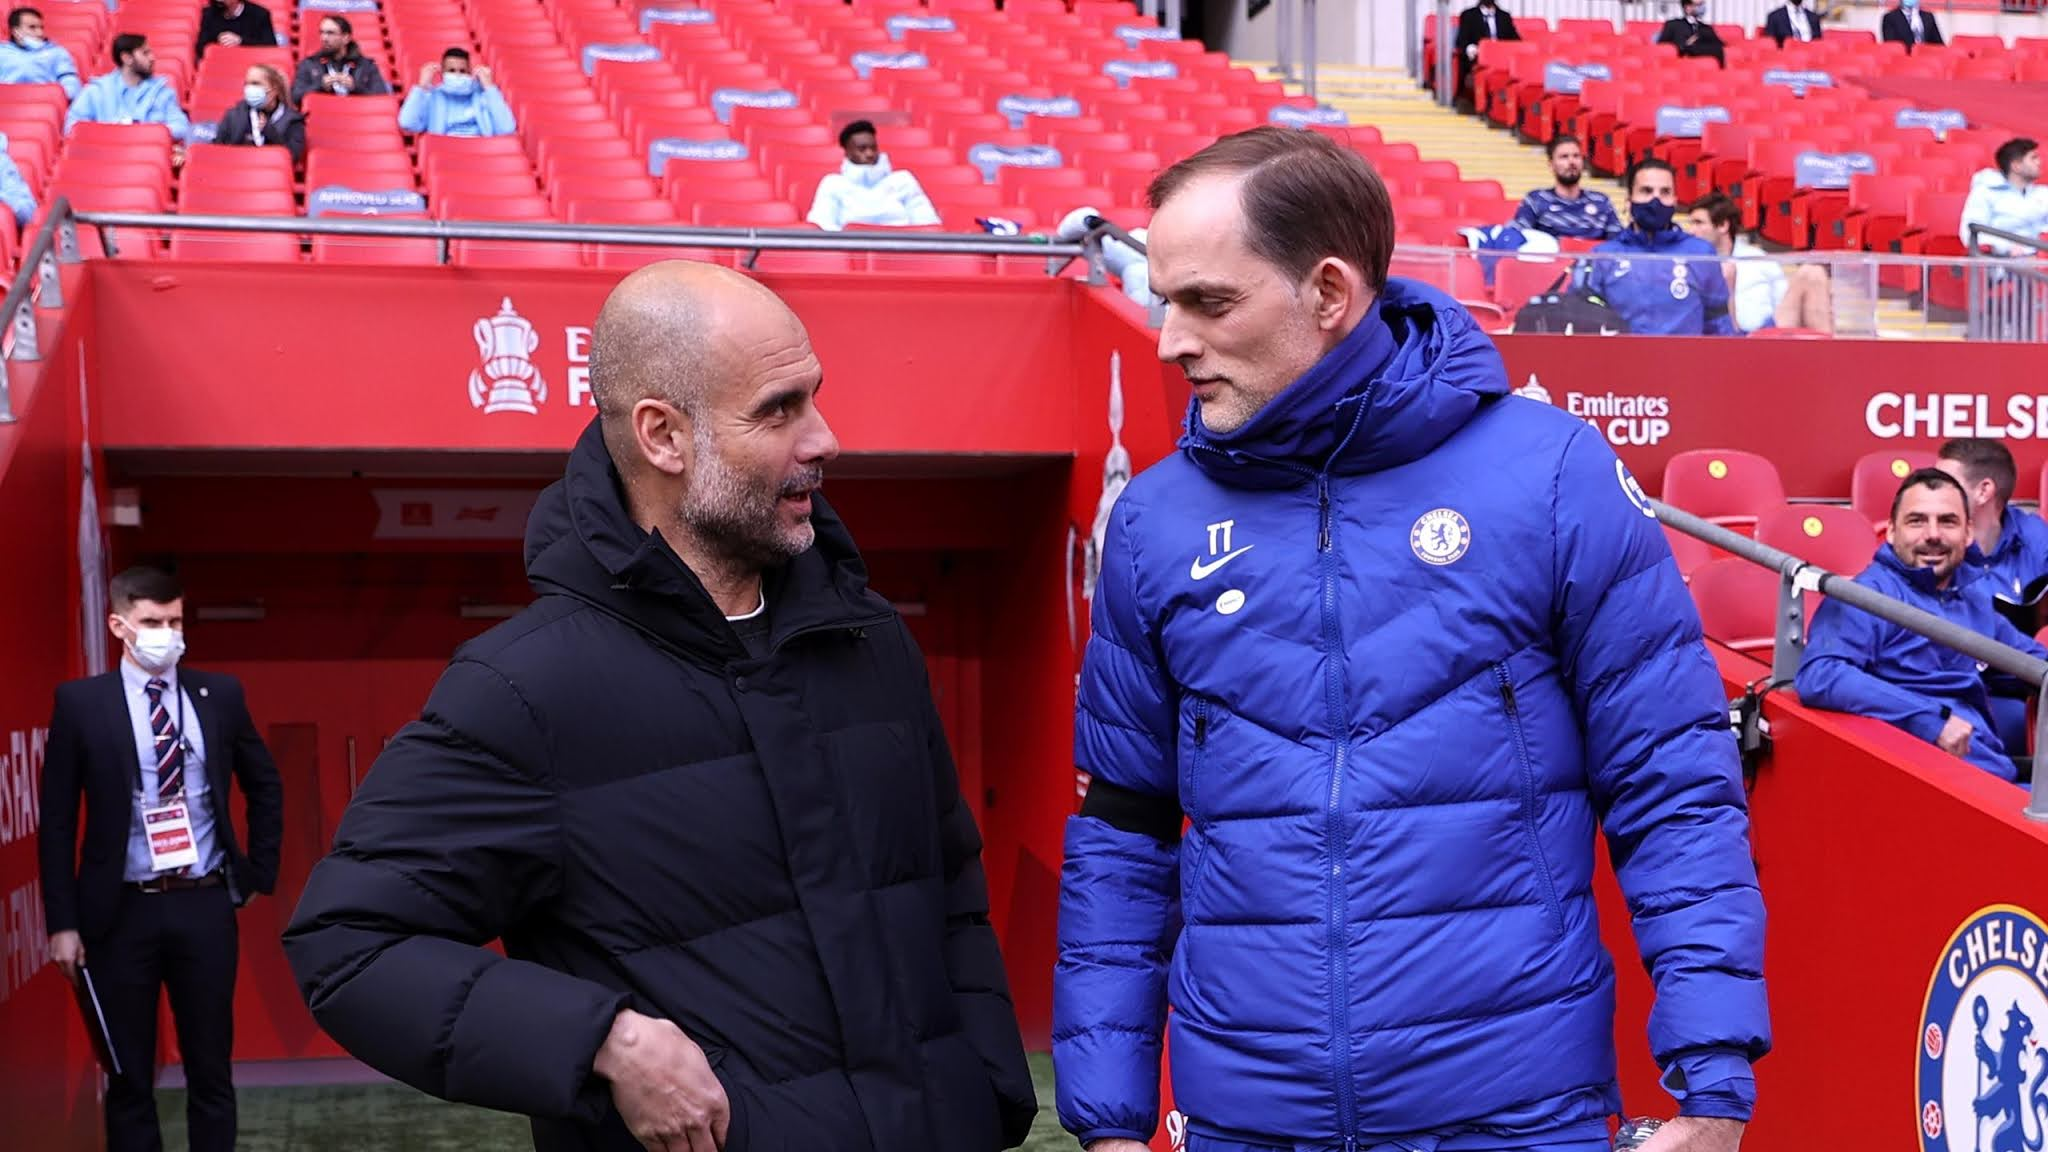 Two of the brightest football minds will meet to decide the winner of the 2020/21 UEFA Champions League